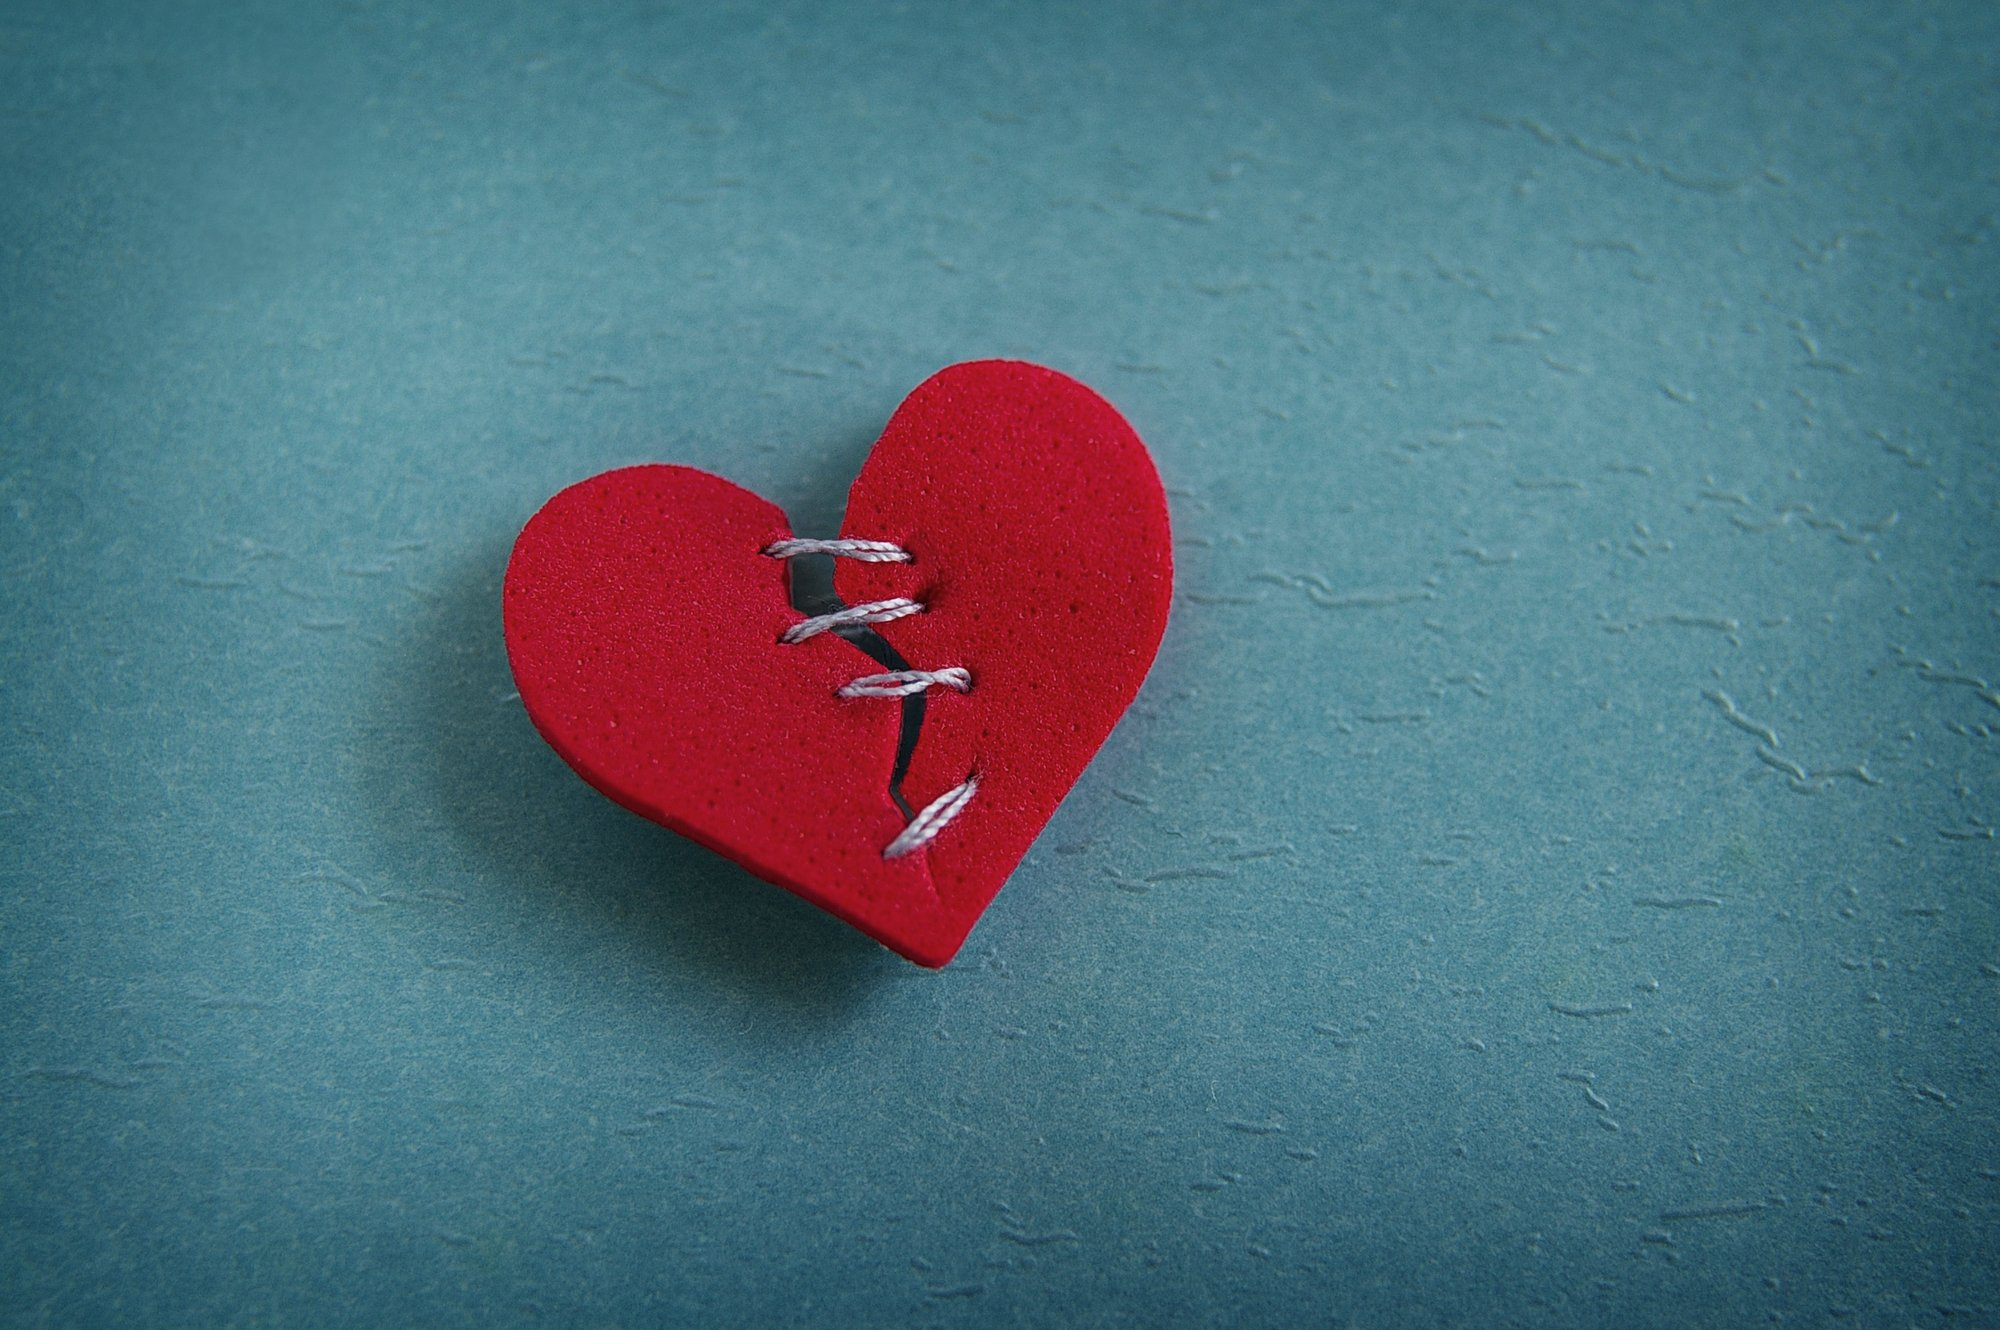 Dealing with a Breakup in Early Recovery